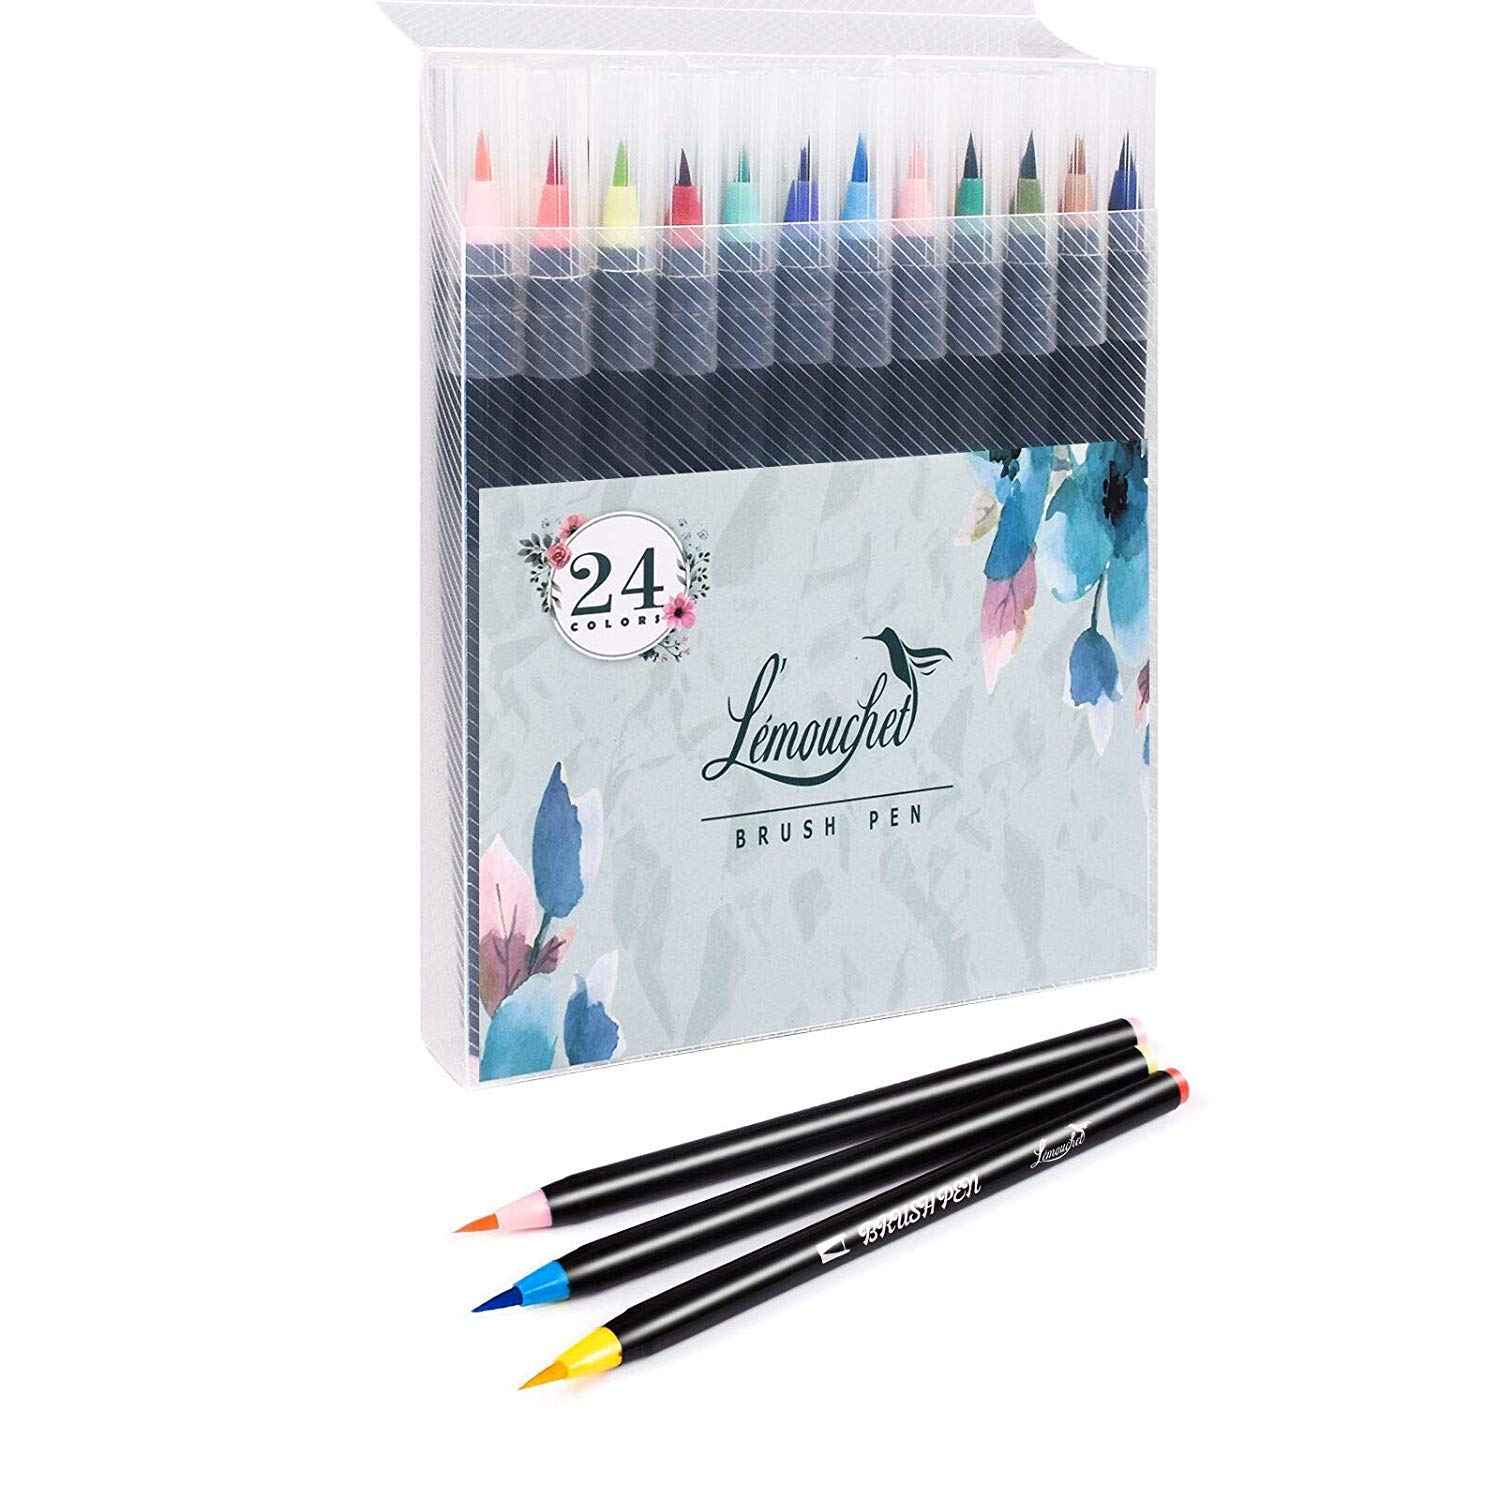 L'émouchet 24 Watercolor Brush Markers Pen Art Markers, Water Based Drawing Marker Brushes Colored Pens Set for Adult Coloring Books Manga Comic Calligraphy Journal Note Taking Drawing Planner Art